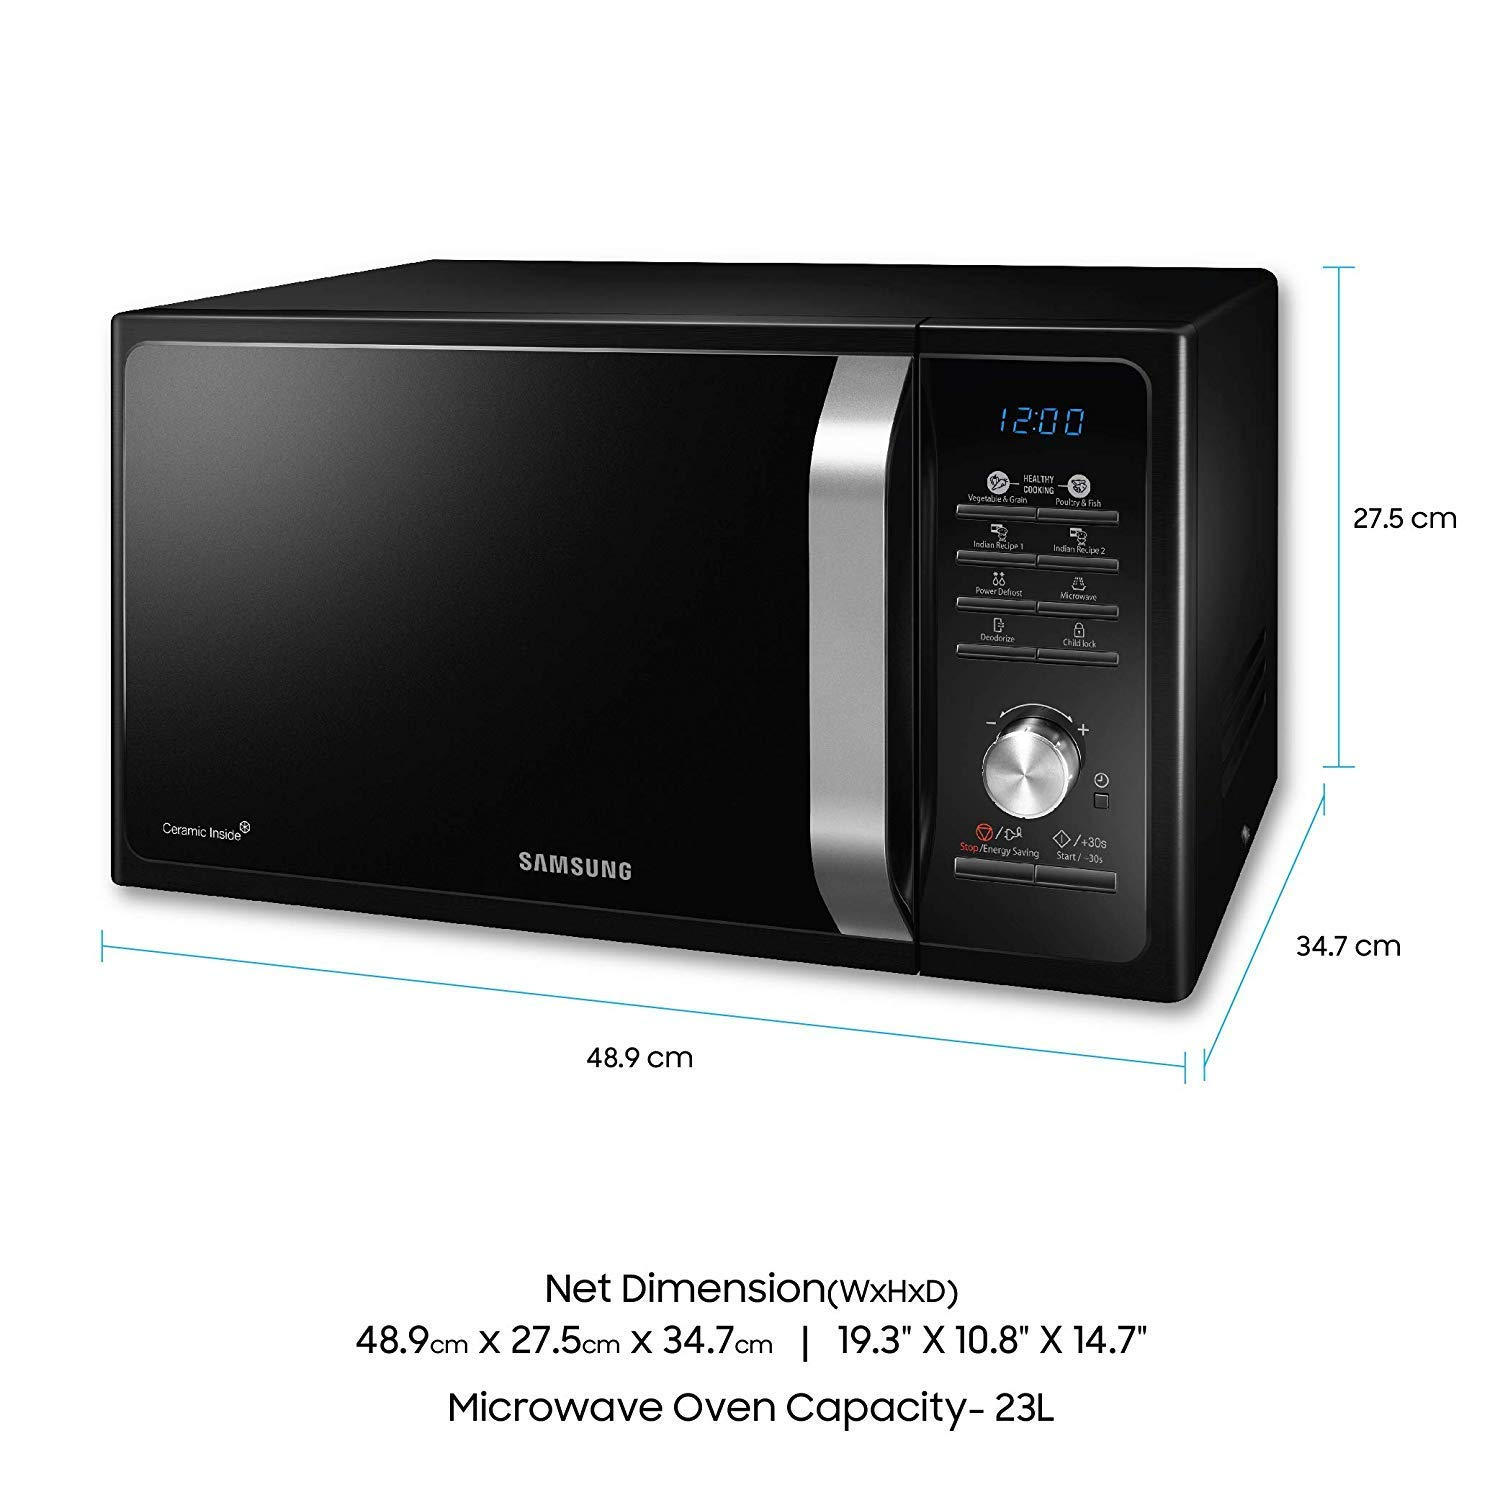 Samsung 23 L Solo Microwave Oven (MS23F301TAKTL, Black) 02